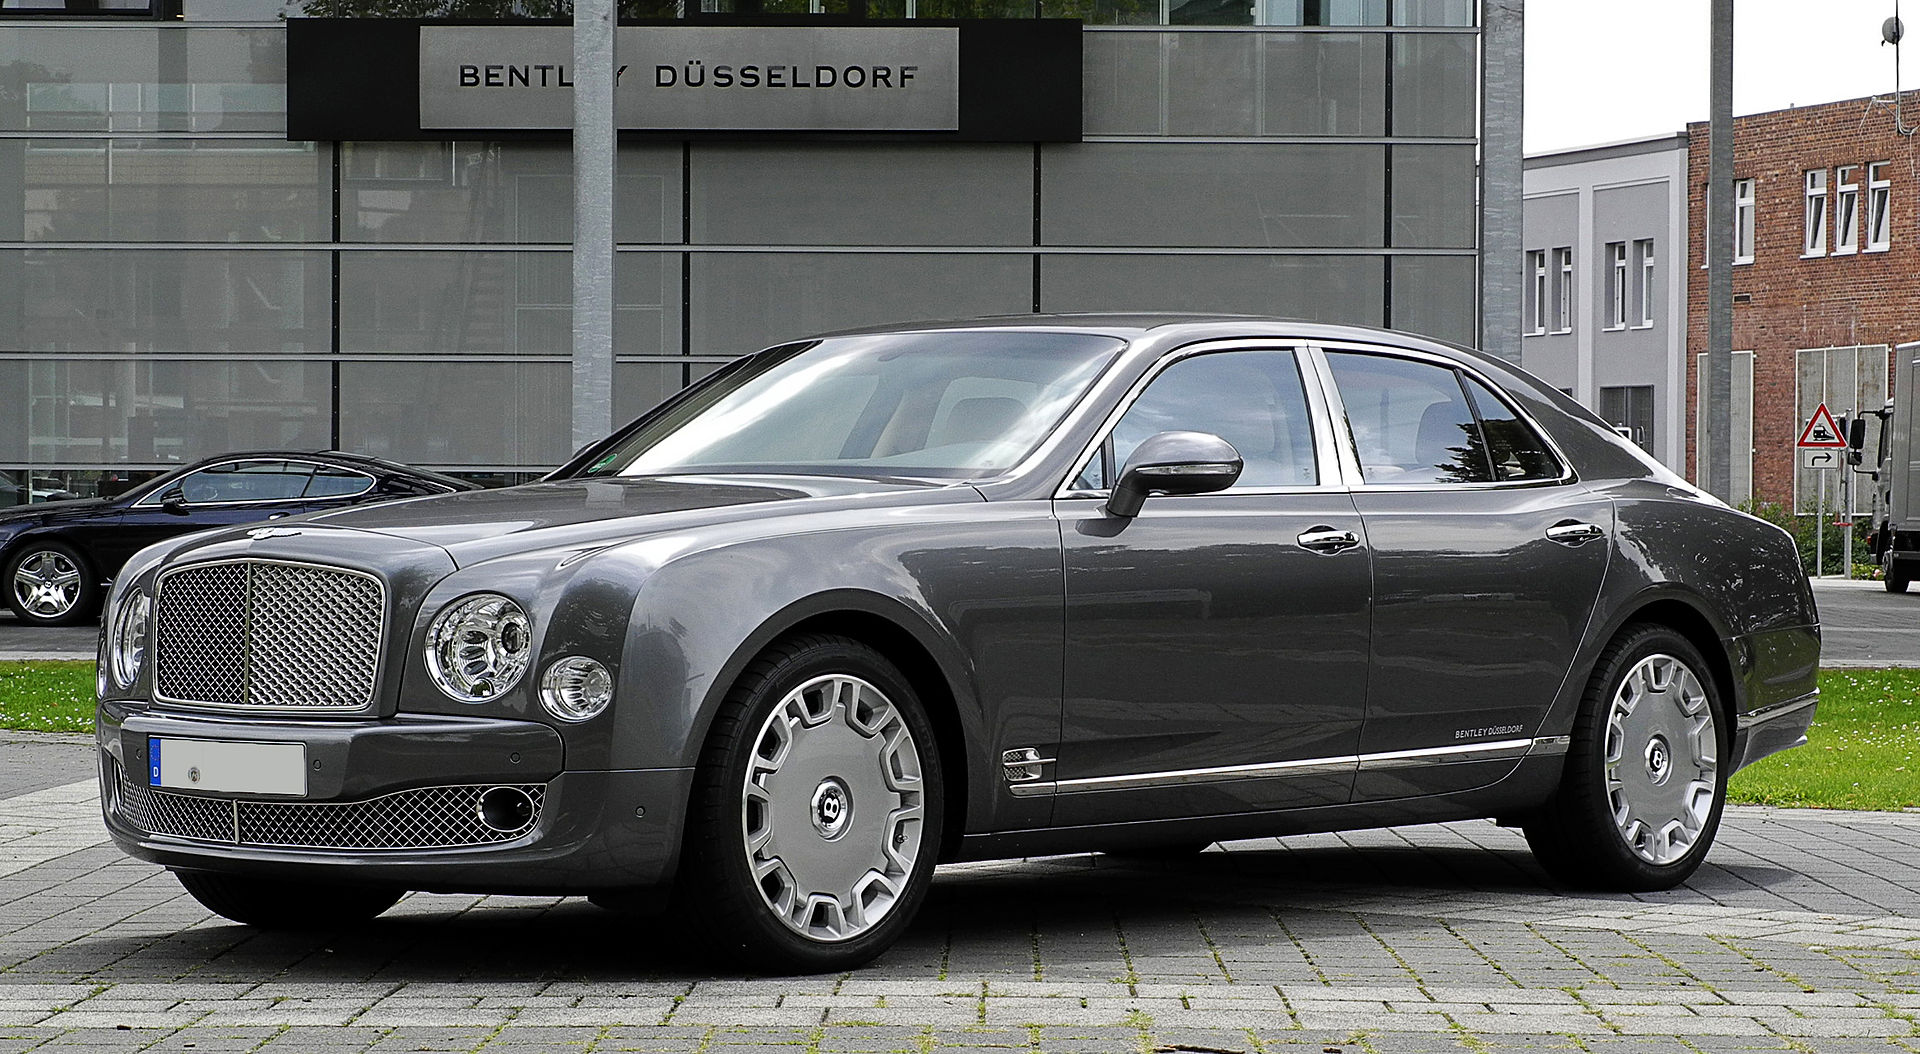 Bentley Mulsanne (2009)